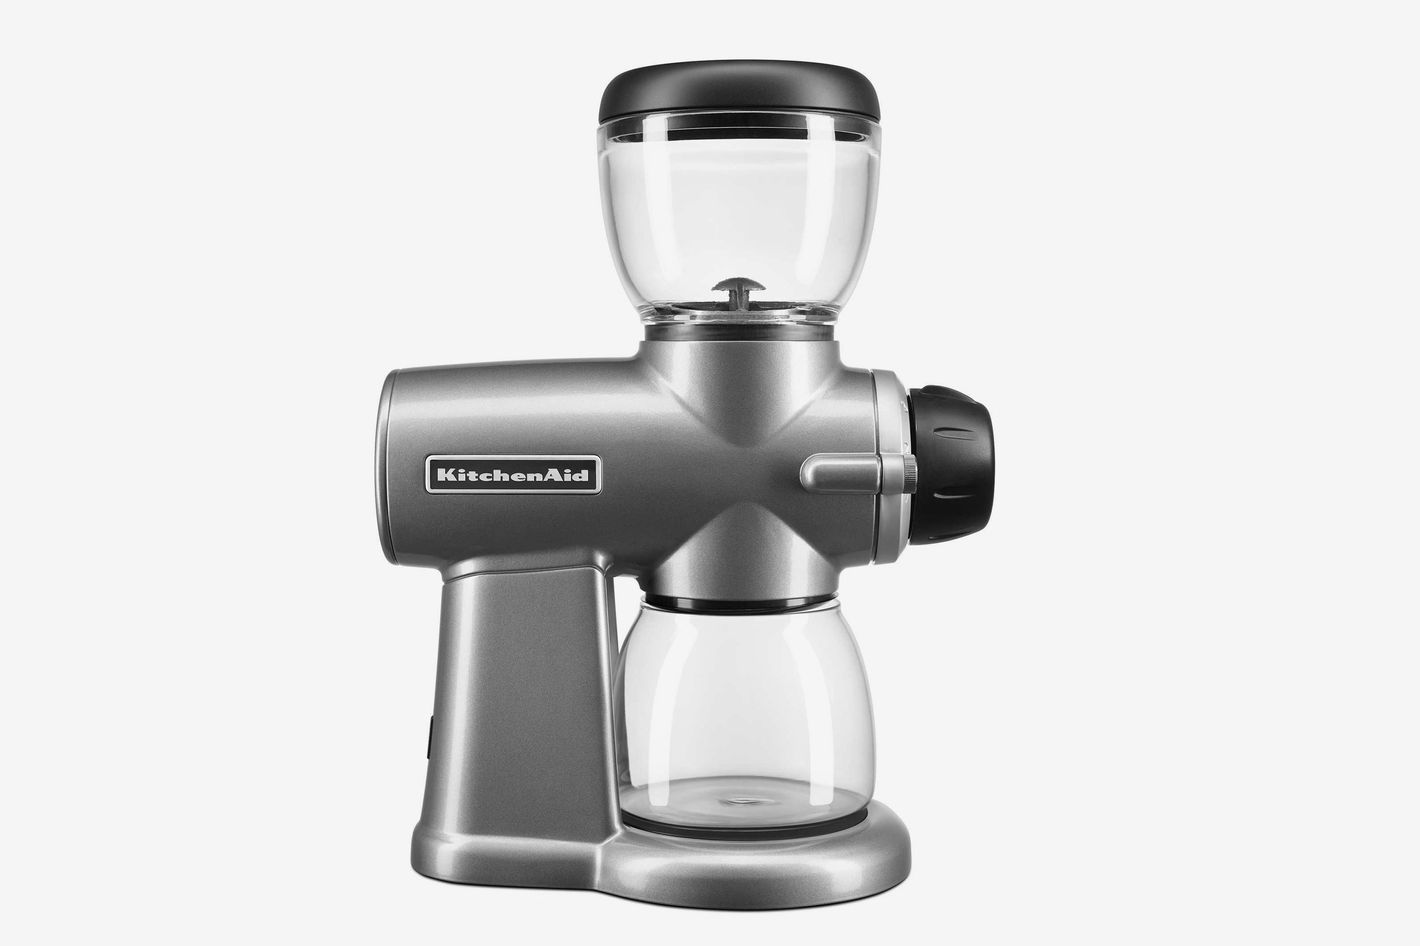 KitchenAid Burr Coffee Bean Grinder in Silver